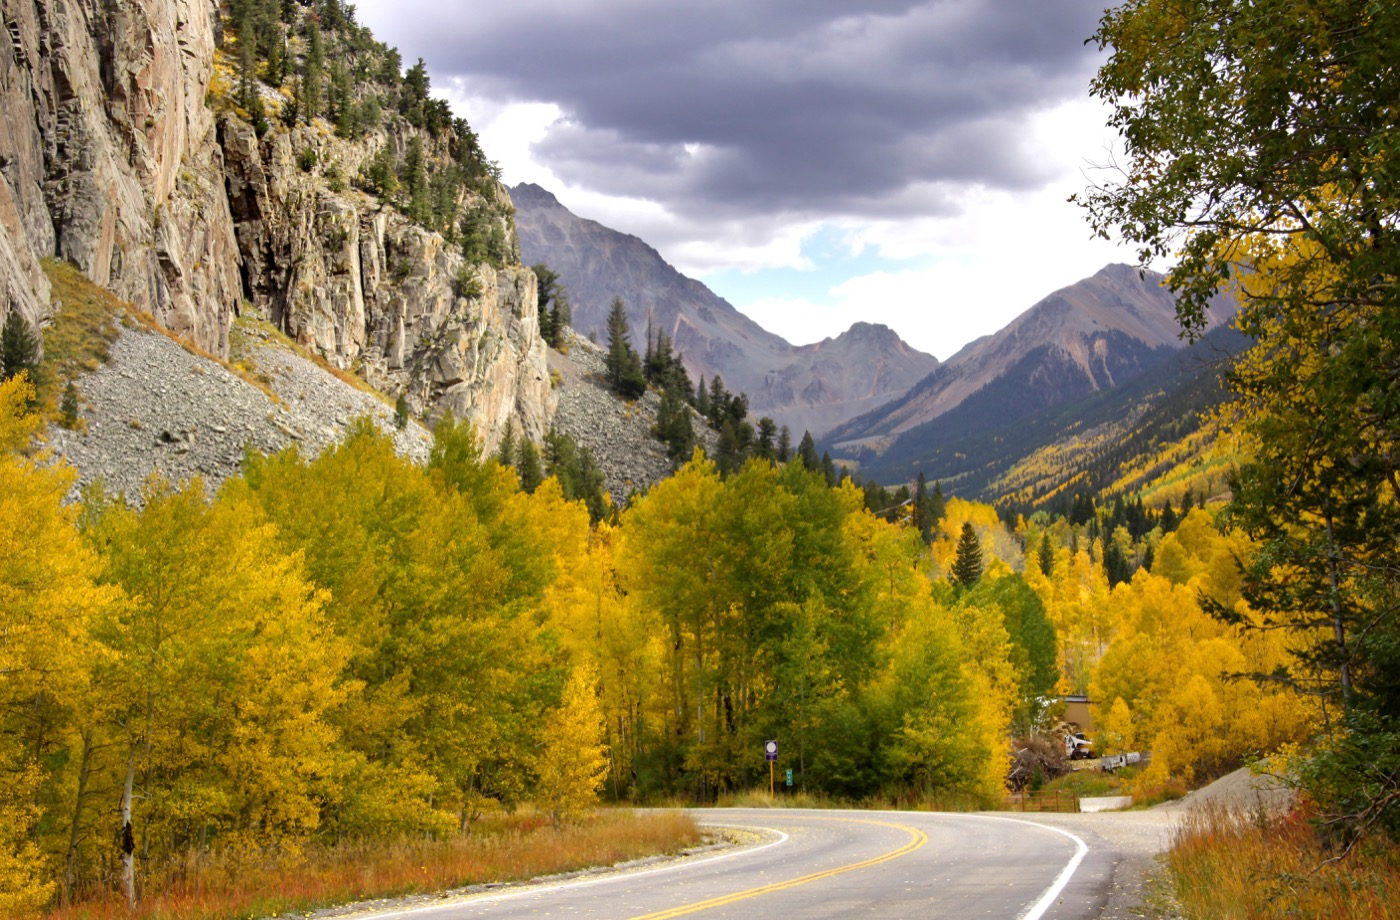 10539833 - scenic drive in rocky mountains in colorado